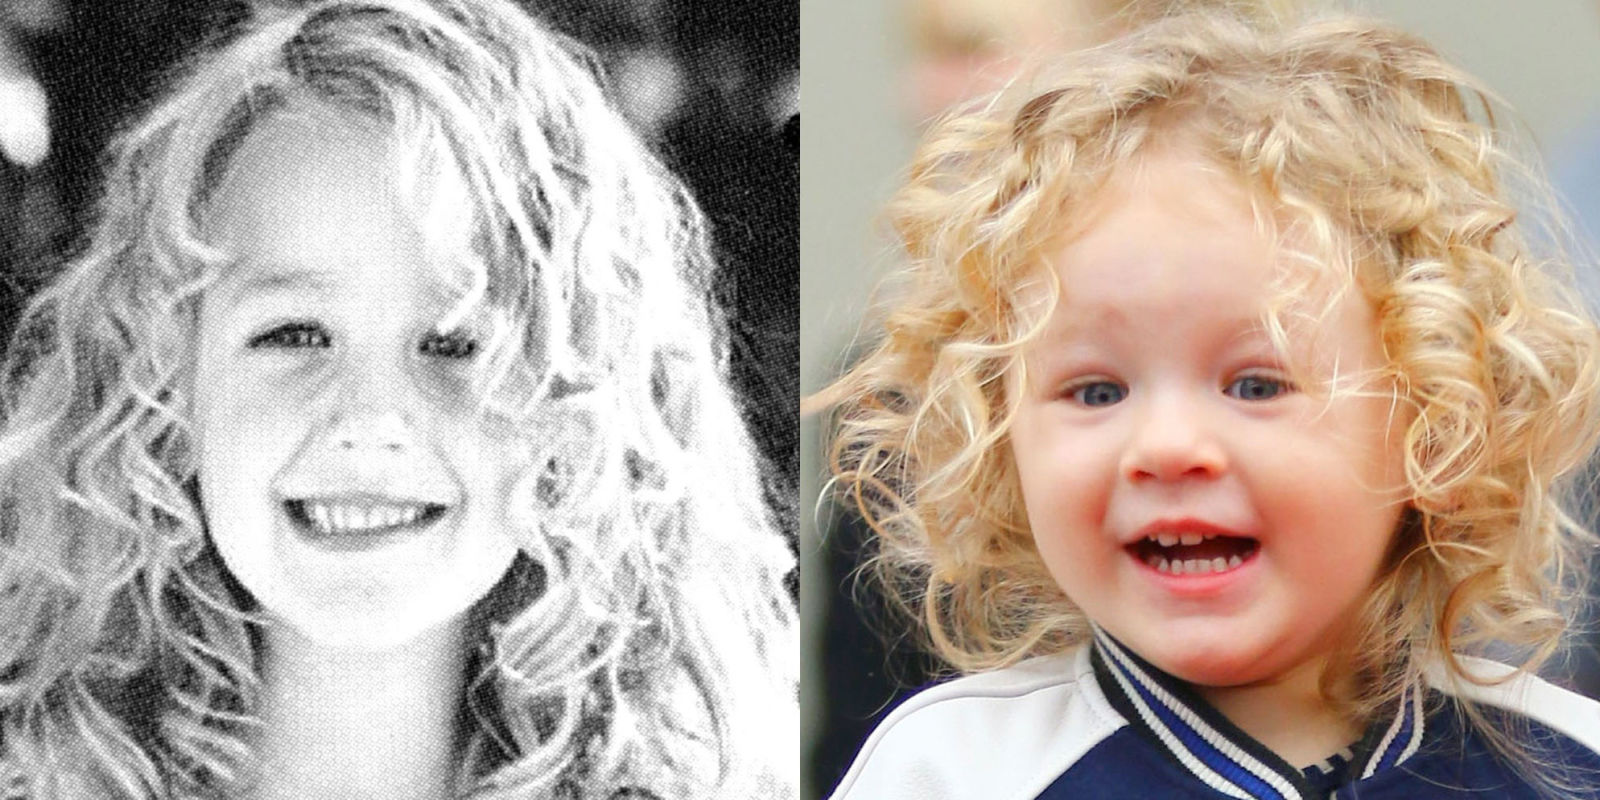 Blake Lively's Daughter Looks Just Like Her As A Child : Elle Blake Lively Daughter